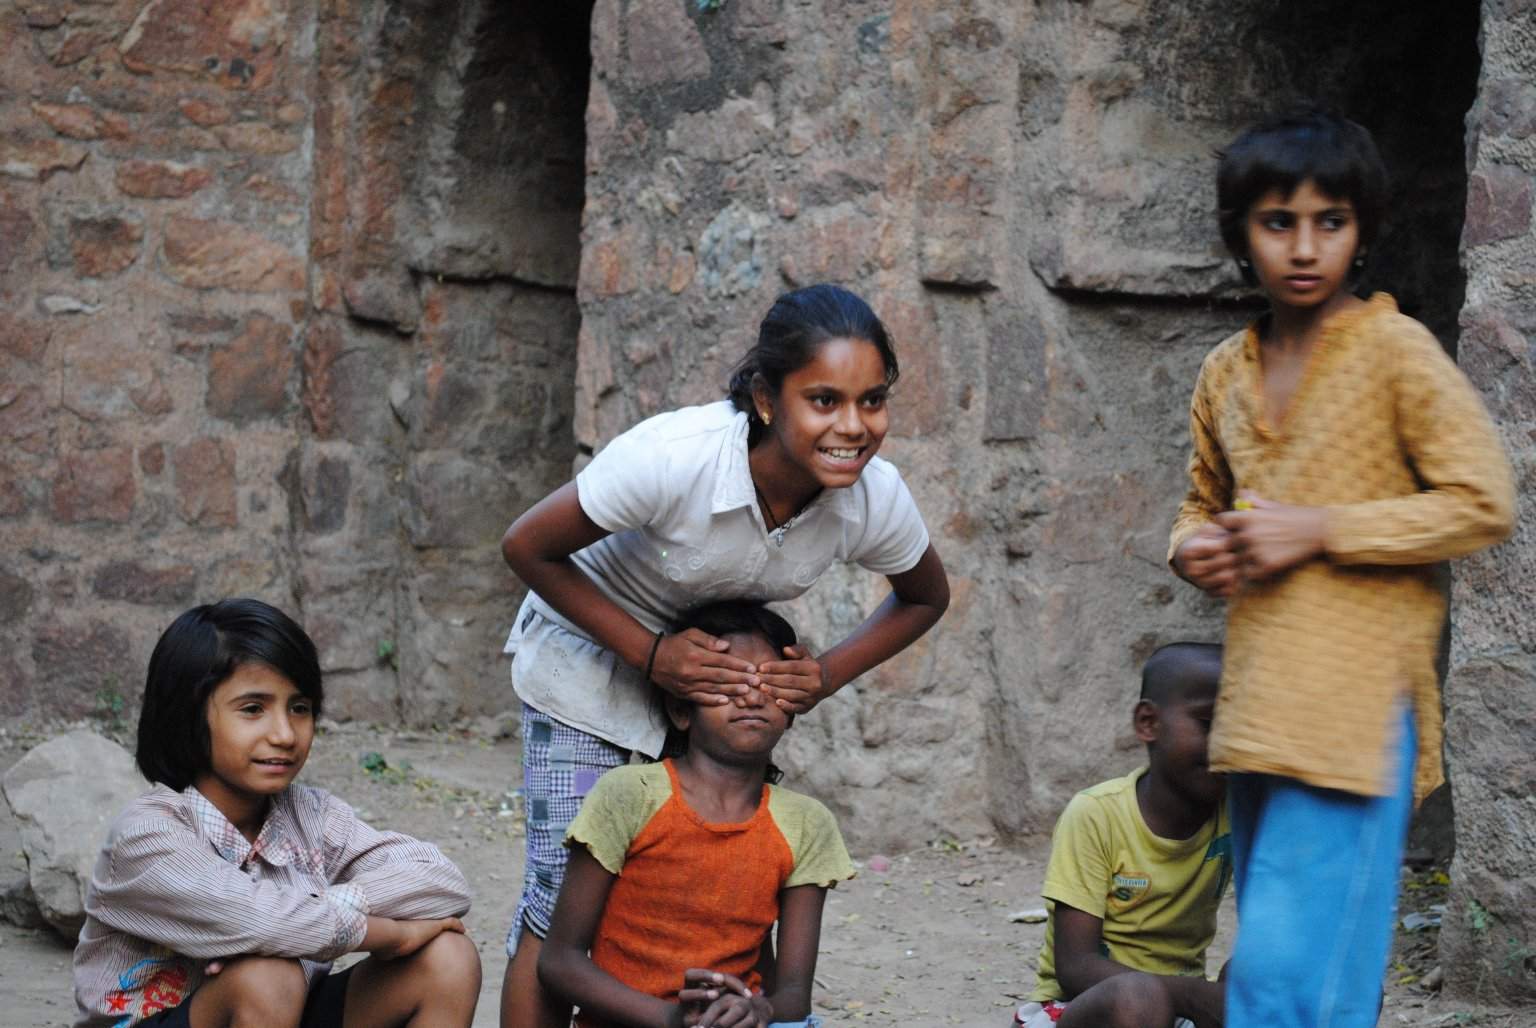 CHILDREN PLAY IN INDIA